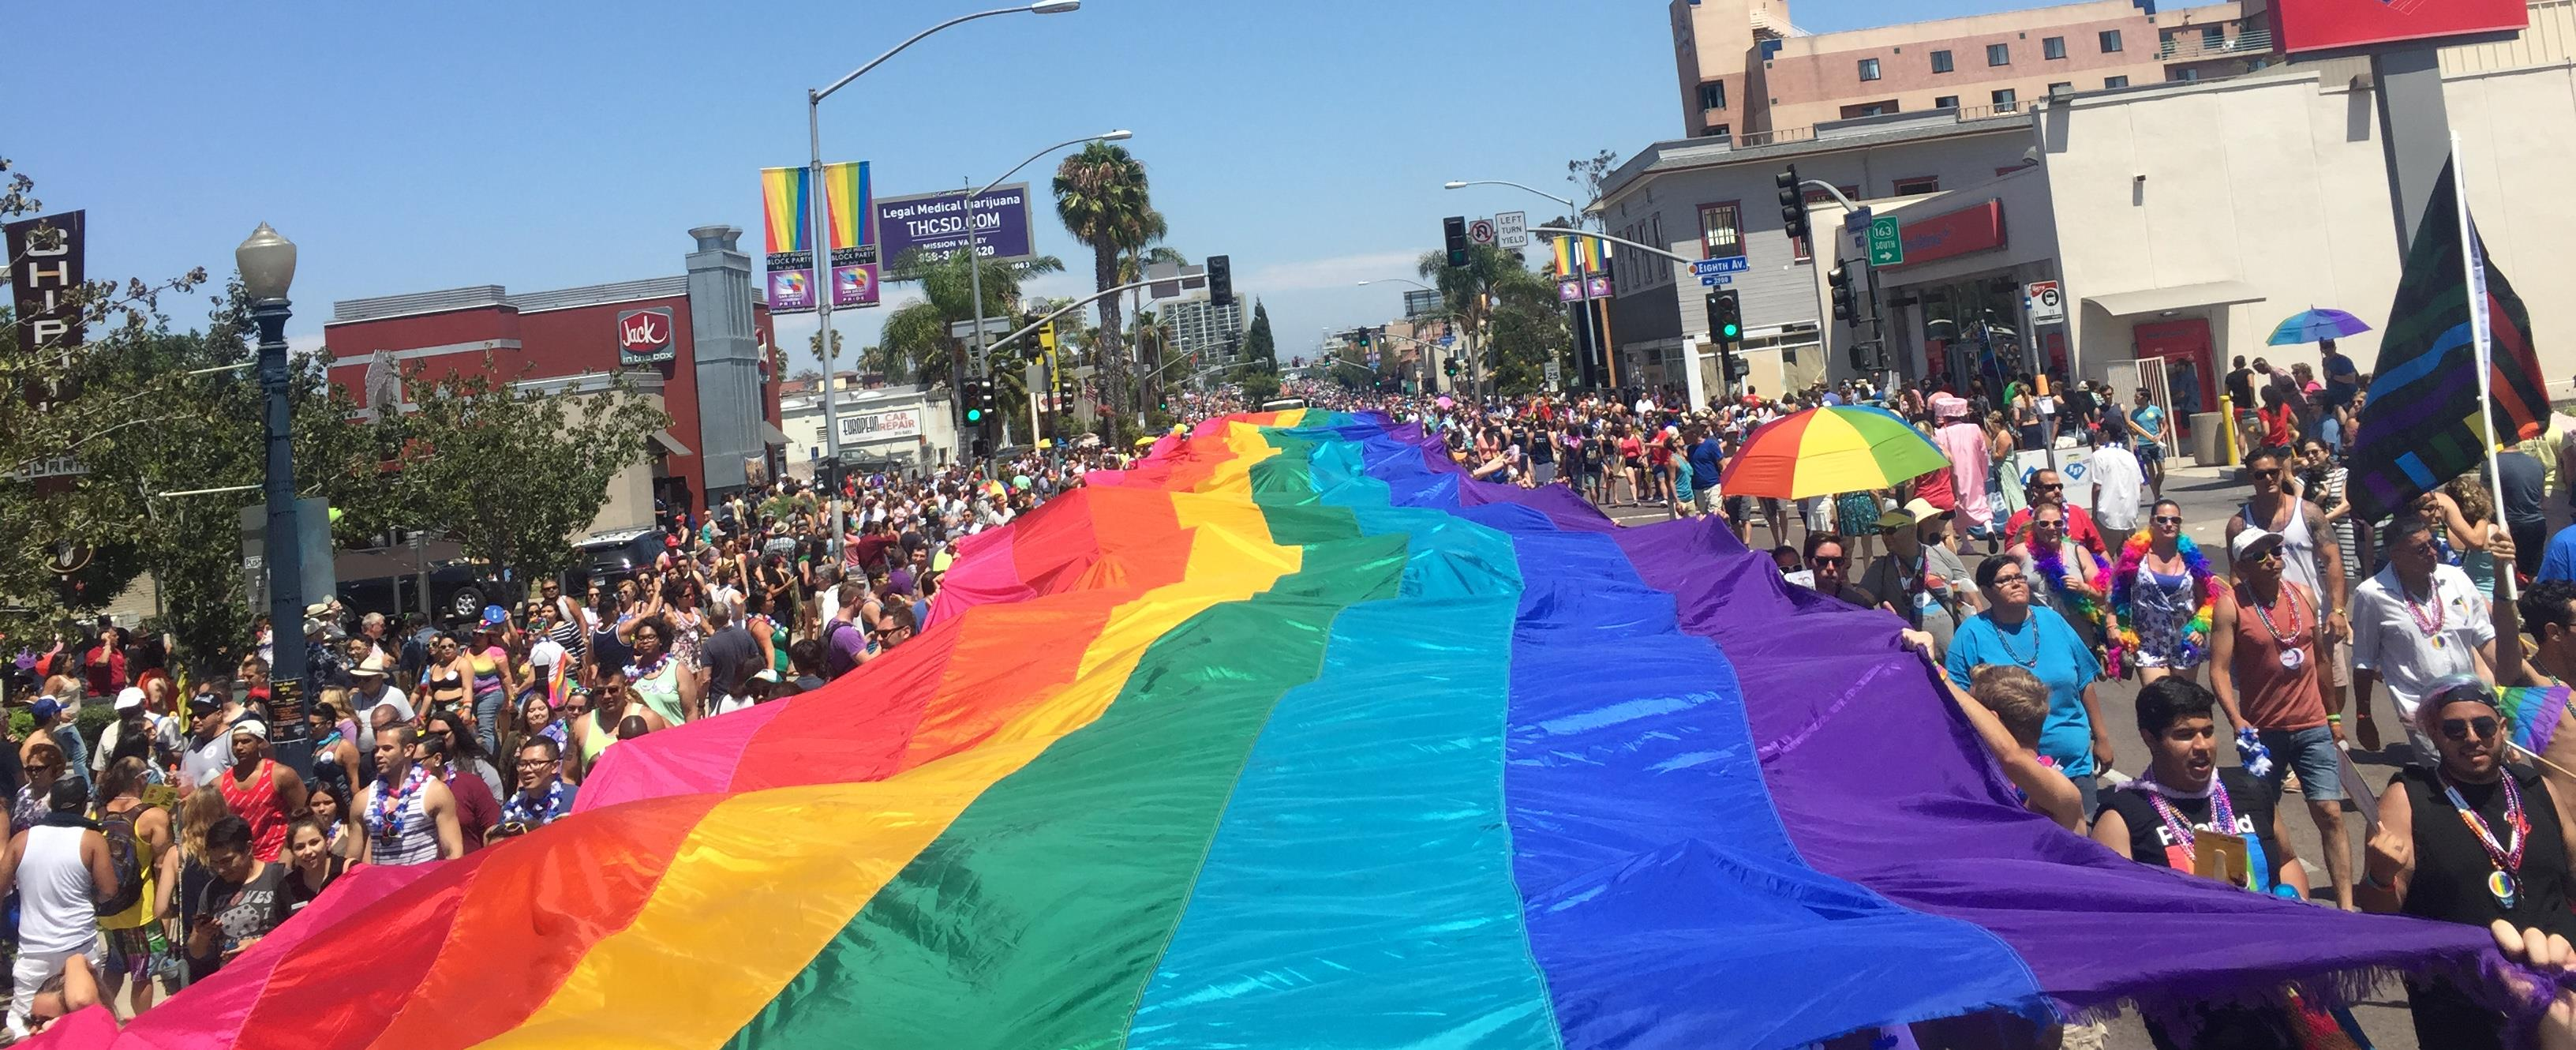 San Diego Pride Parade - Top Things to Do